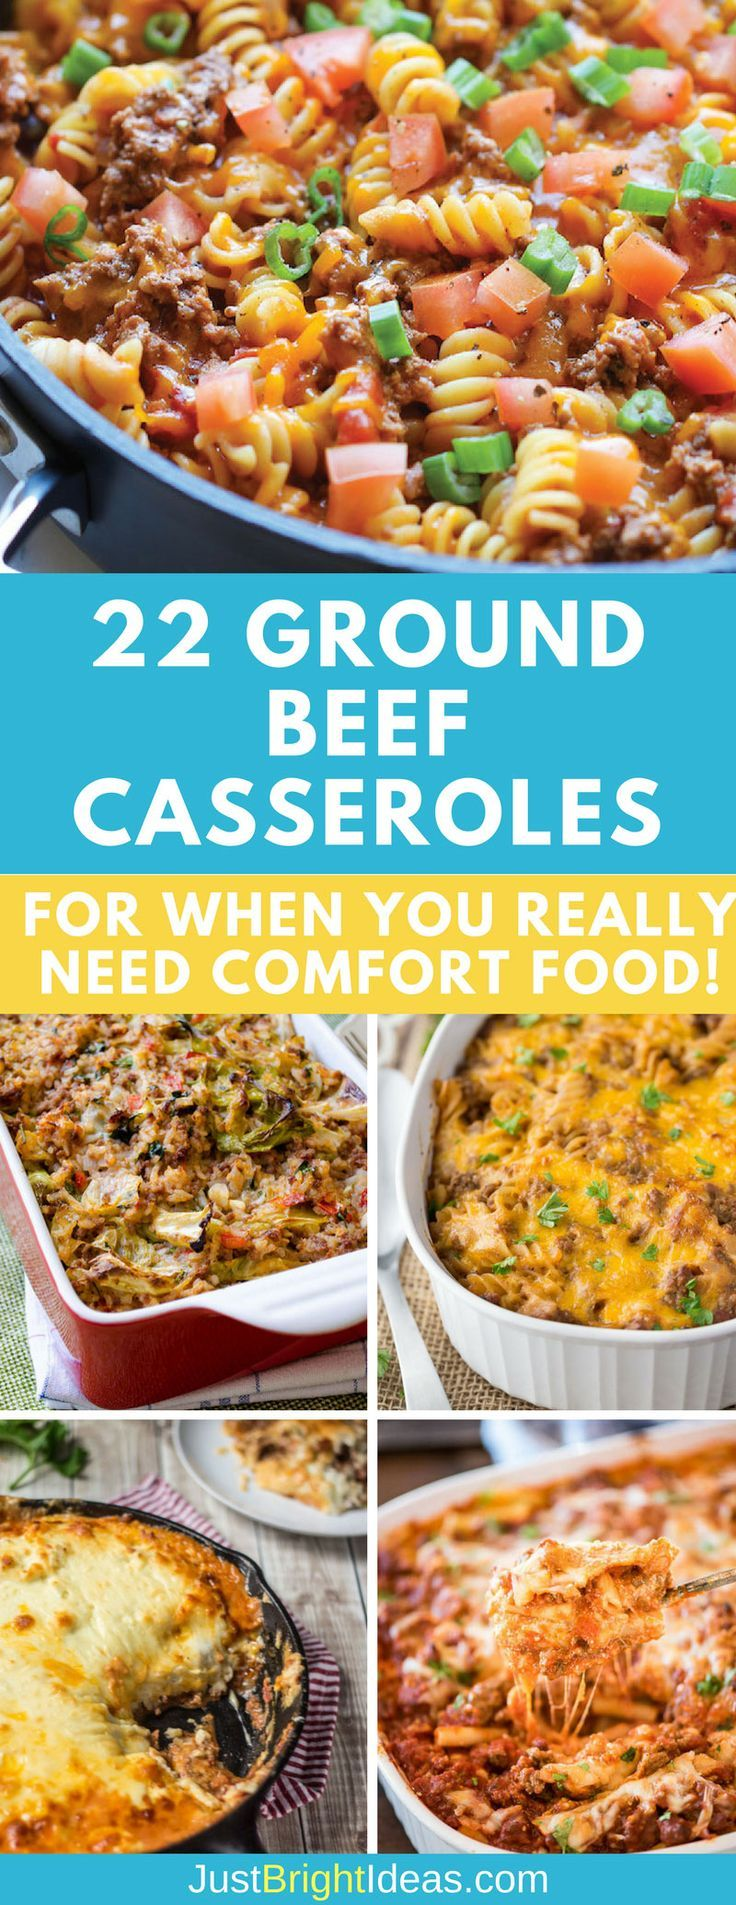 Lure your family to the table with the these easy ground beef casserole recipes teamed with rice, noodles, or even crescent rolls!